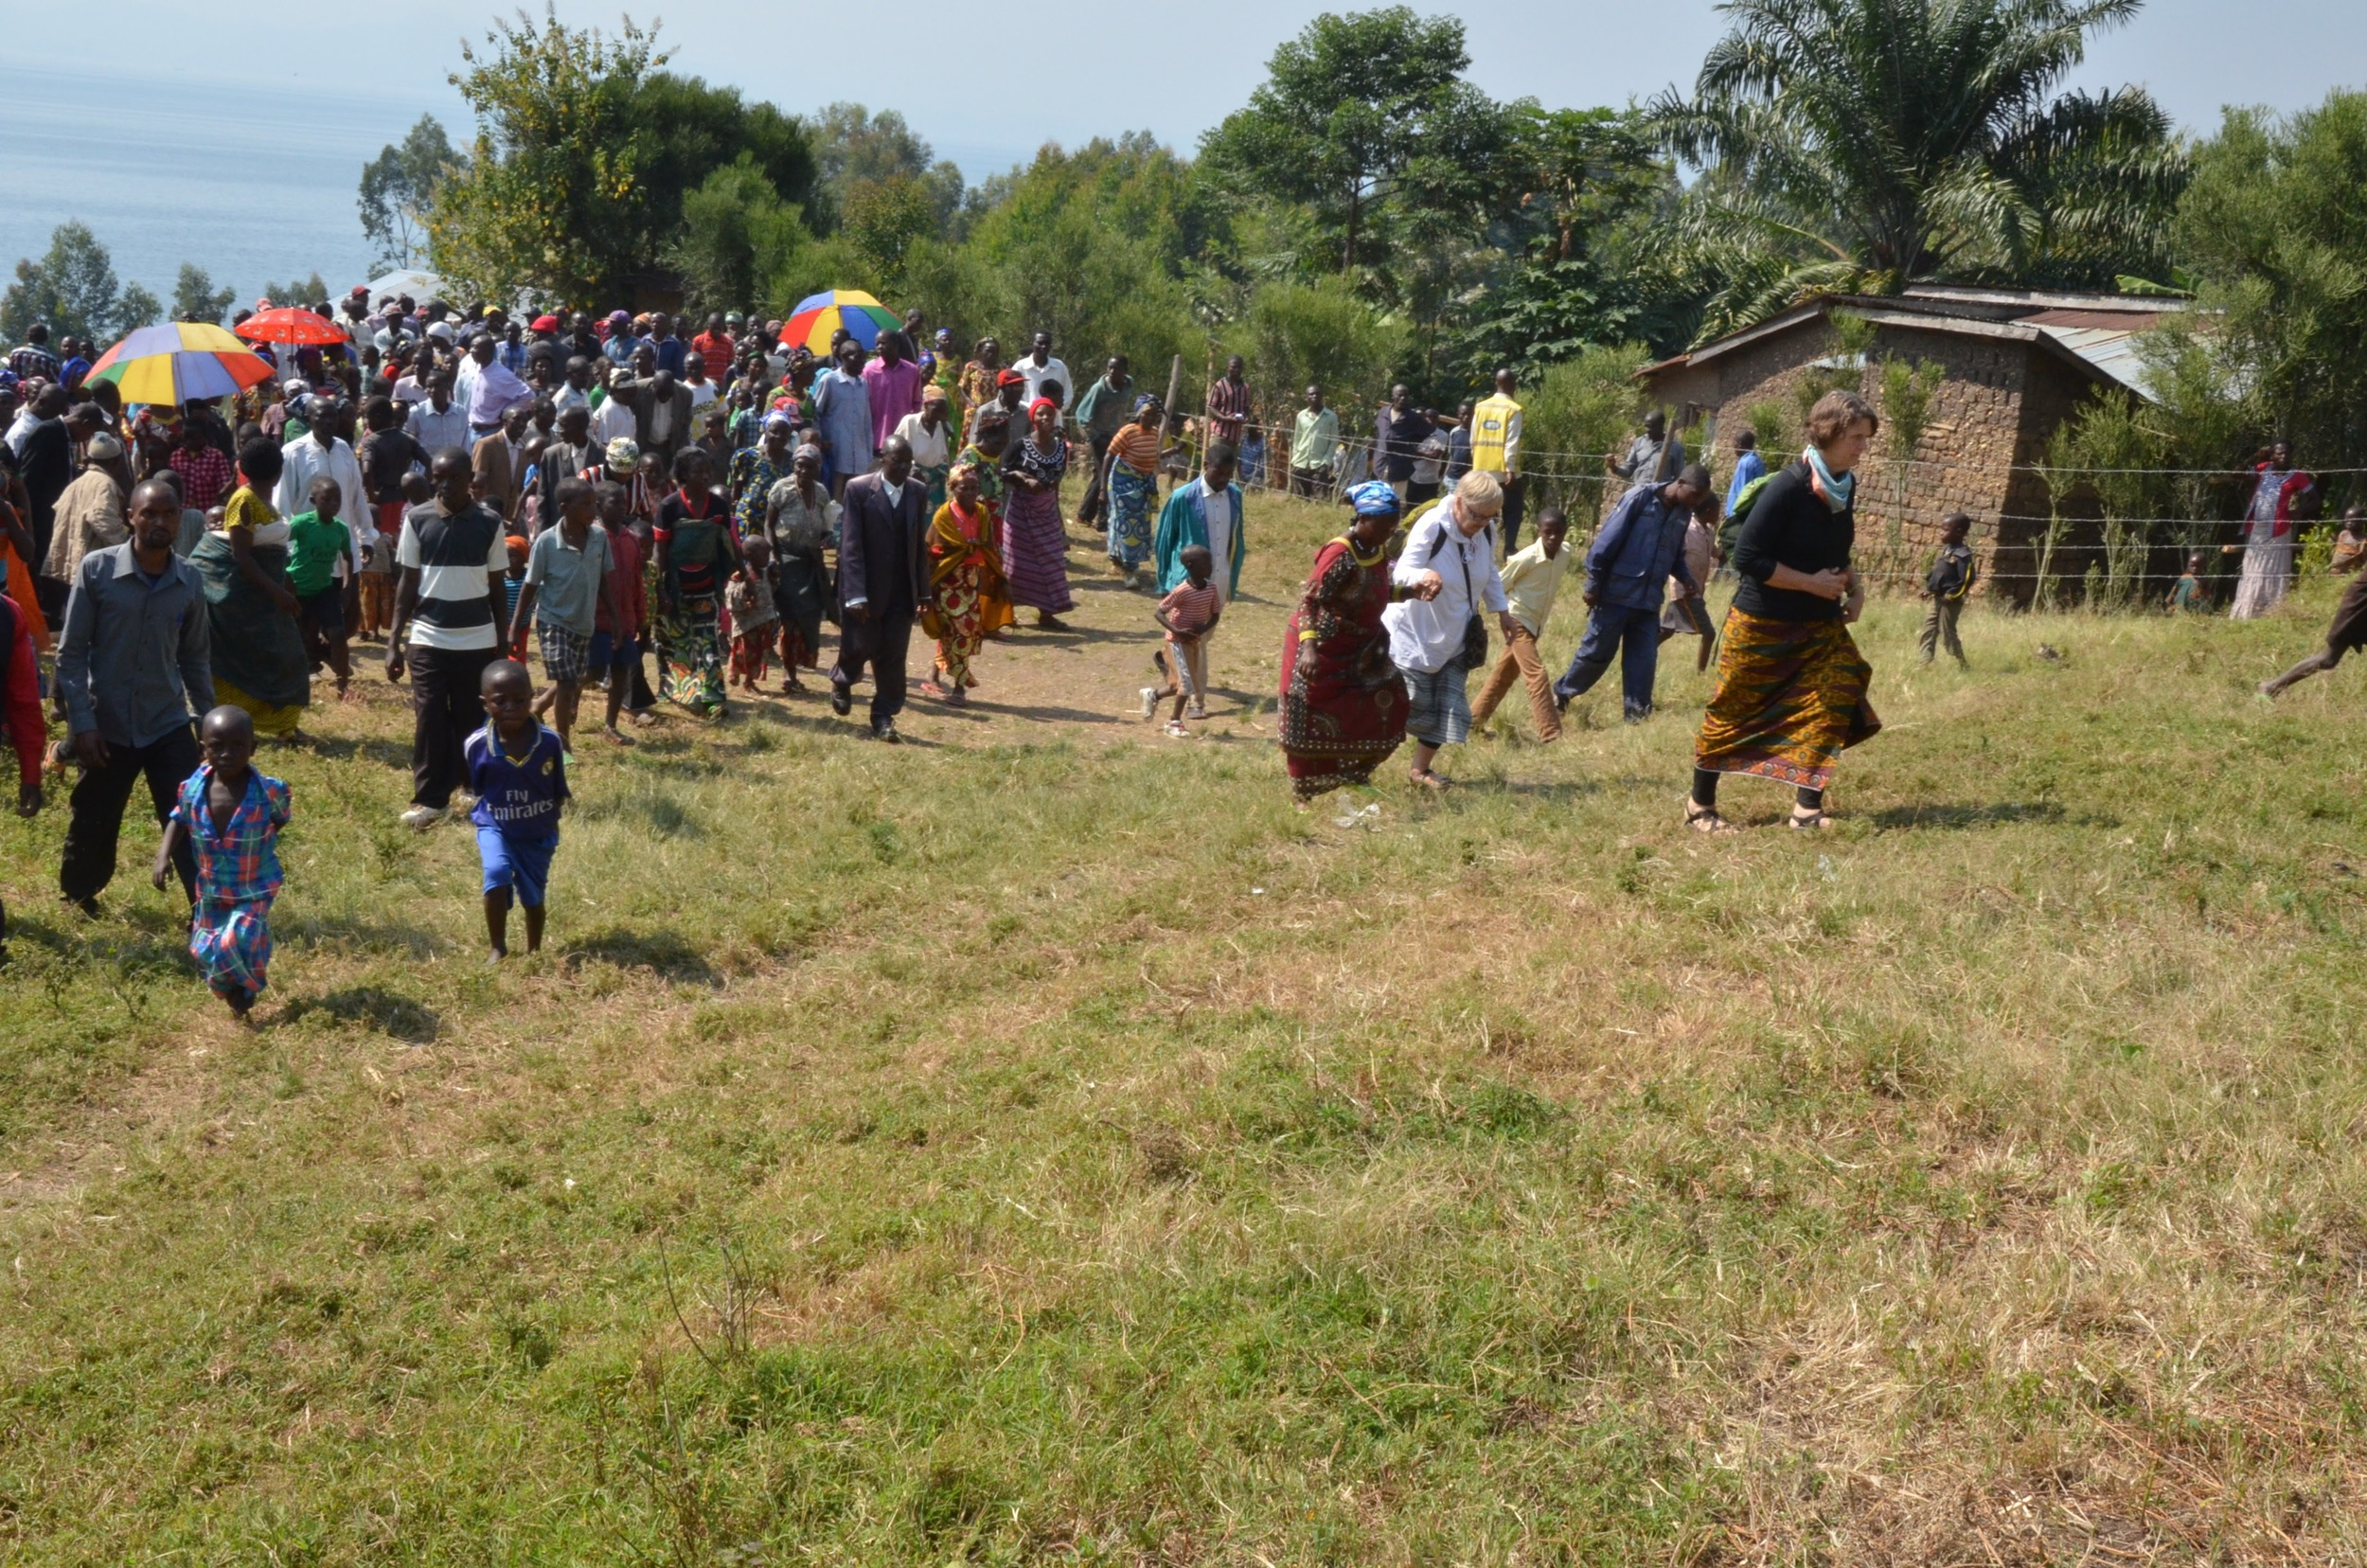 Walking with the community on the land that has been purchased for a future health center on Idjwi Island